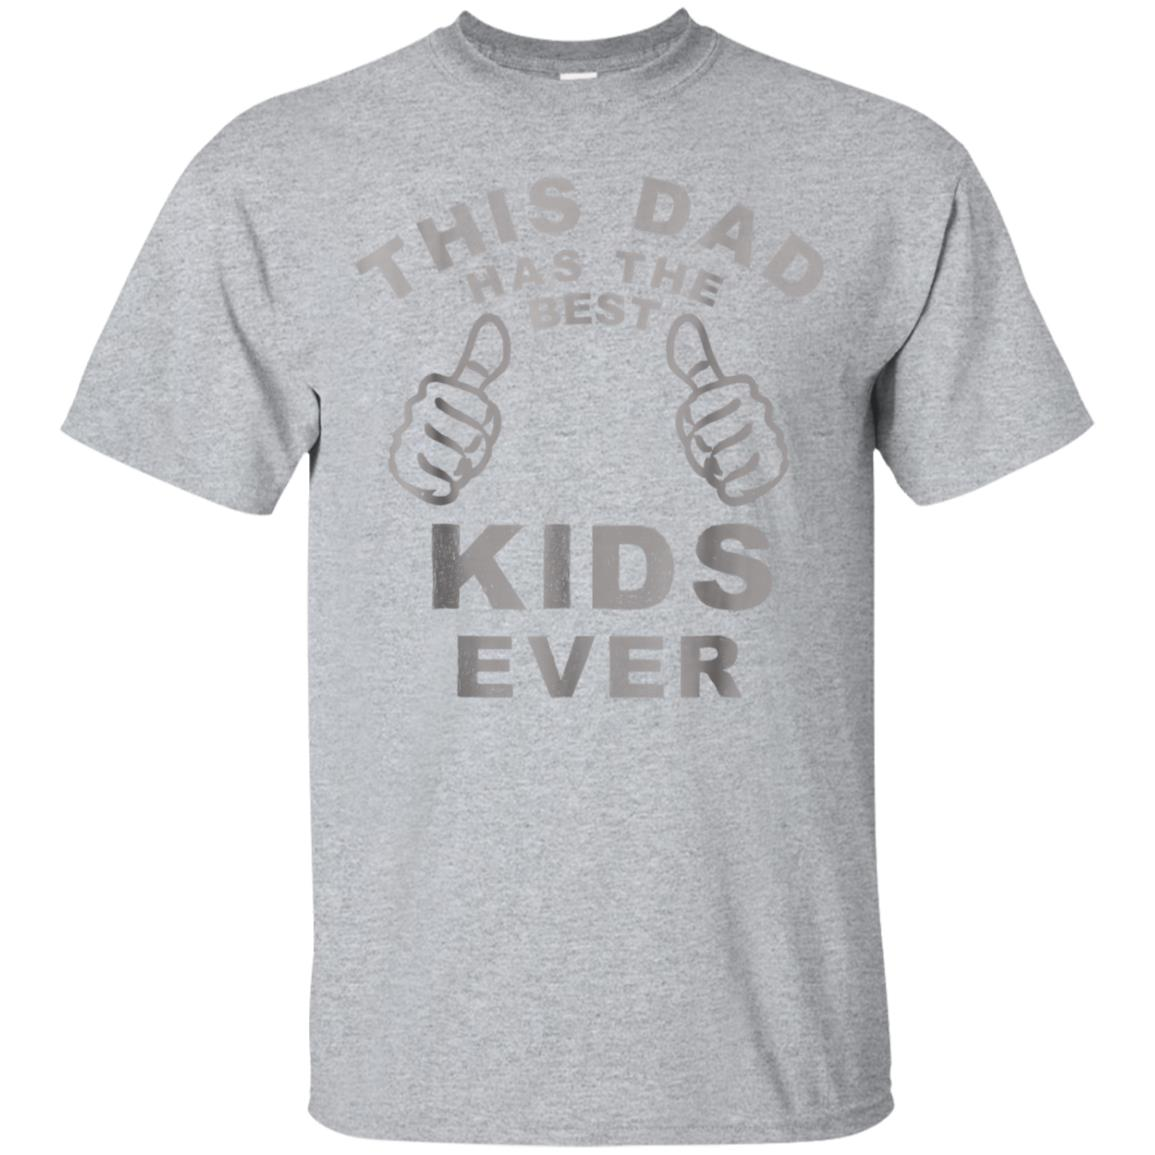 Funny Fathers Day T-Shirt From Best Kids Ever This Dad Gifts 99promocode